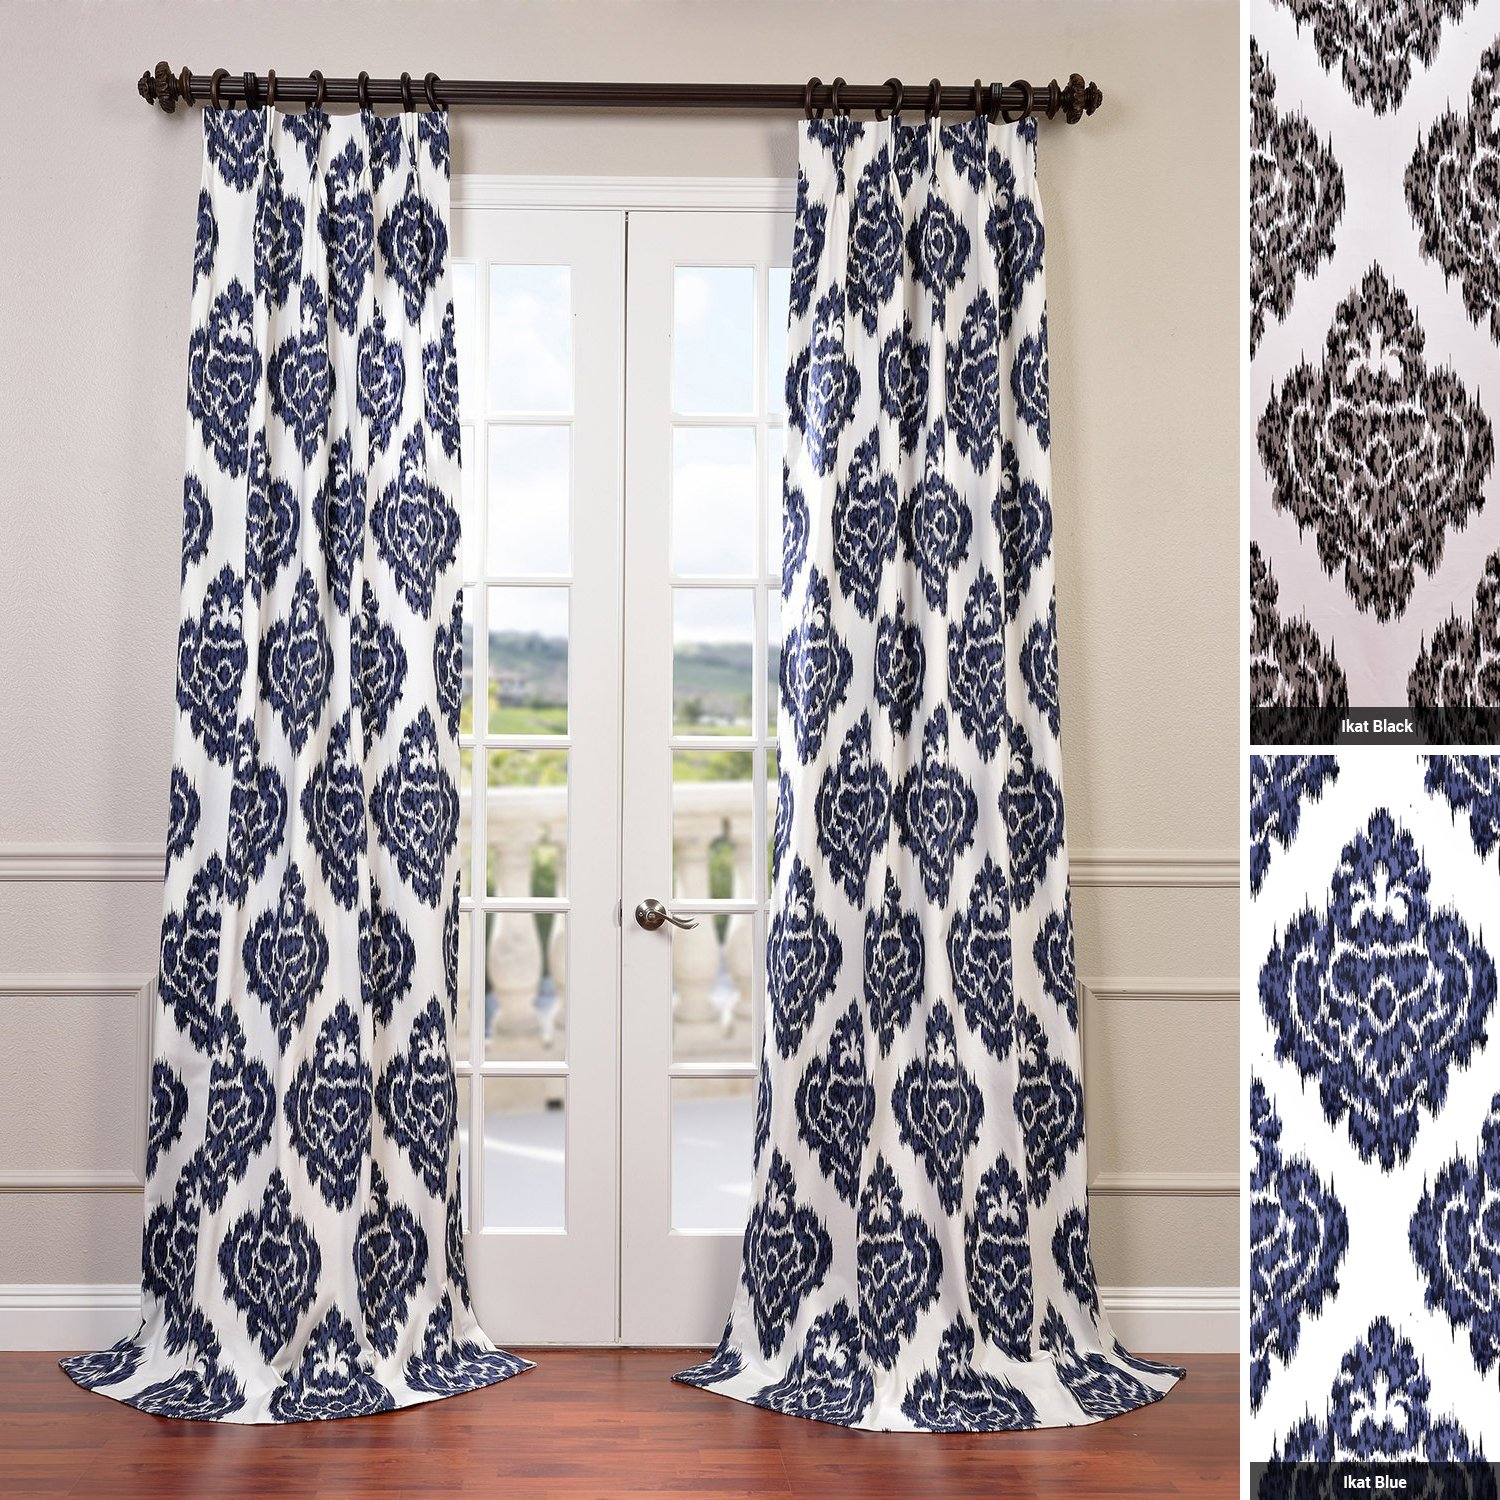 Navy ikat curtains - Amazon Com Half Price Drapes Prtw D24a 84 Printed Cotton Curtain Ikat Blue Home Kitchen